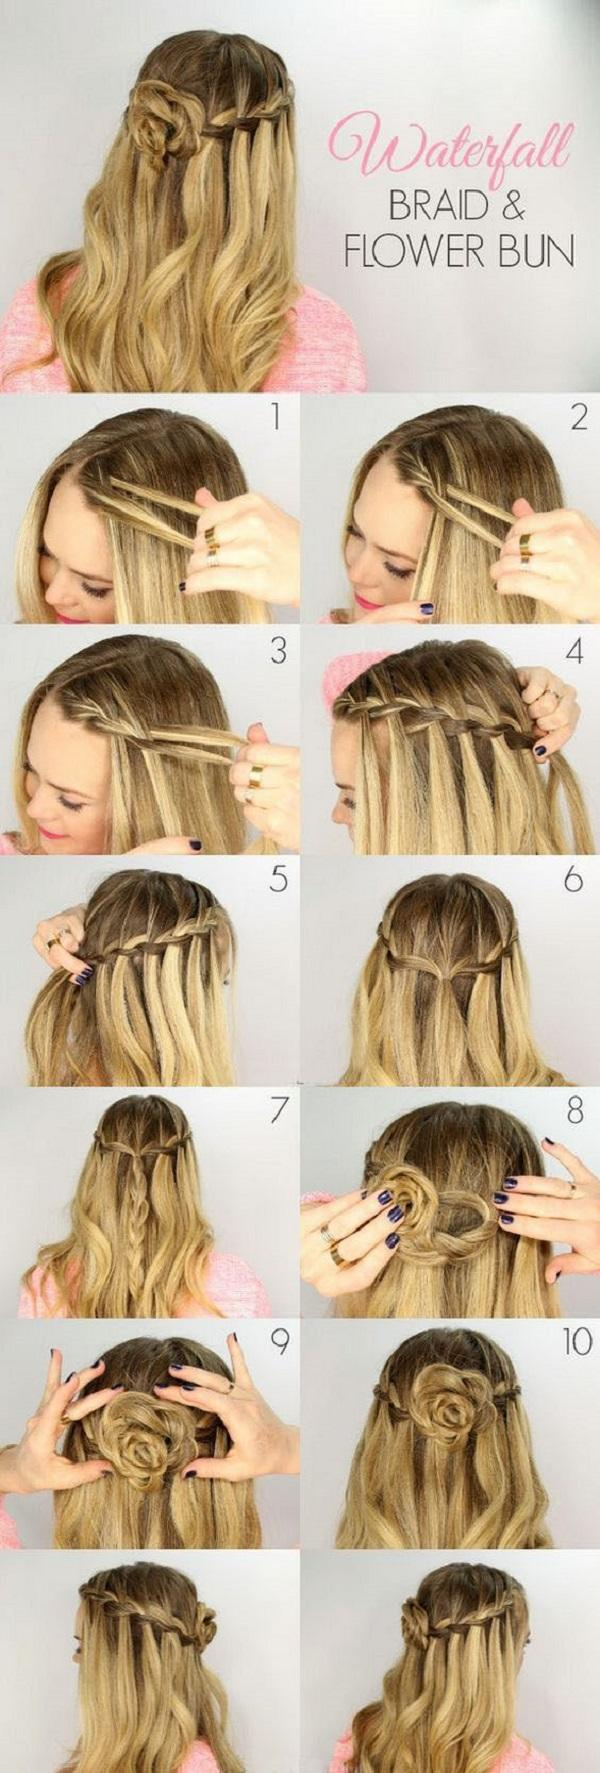 10 Easy Hairstyles for long hair  Cuded